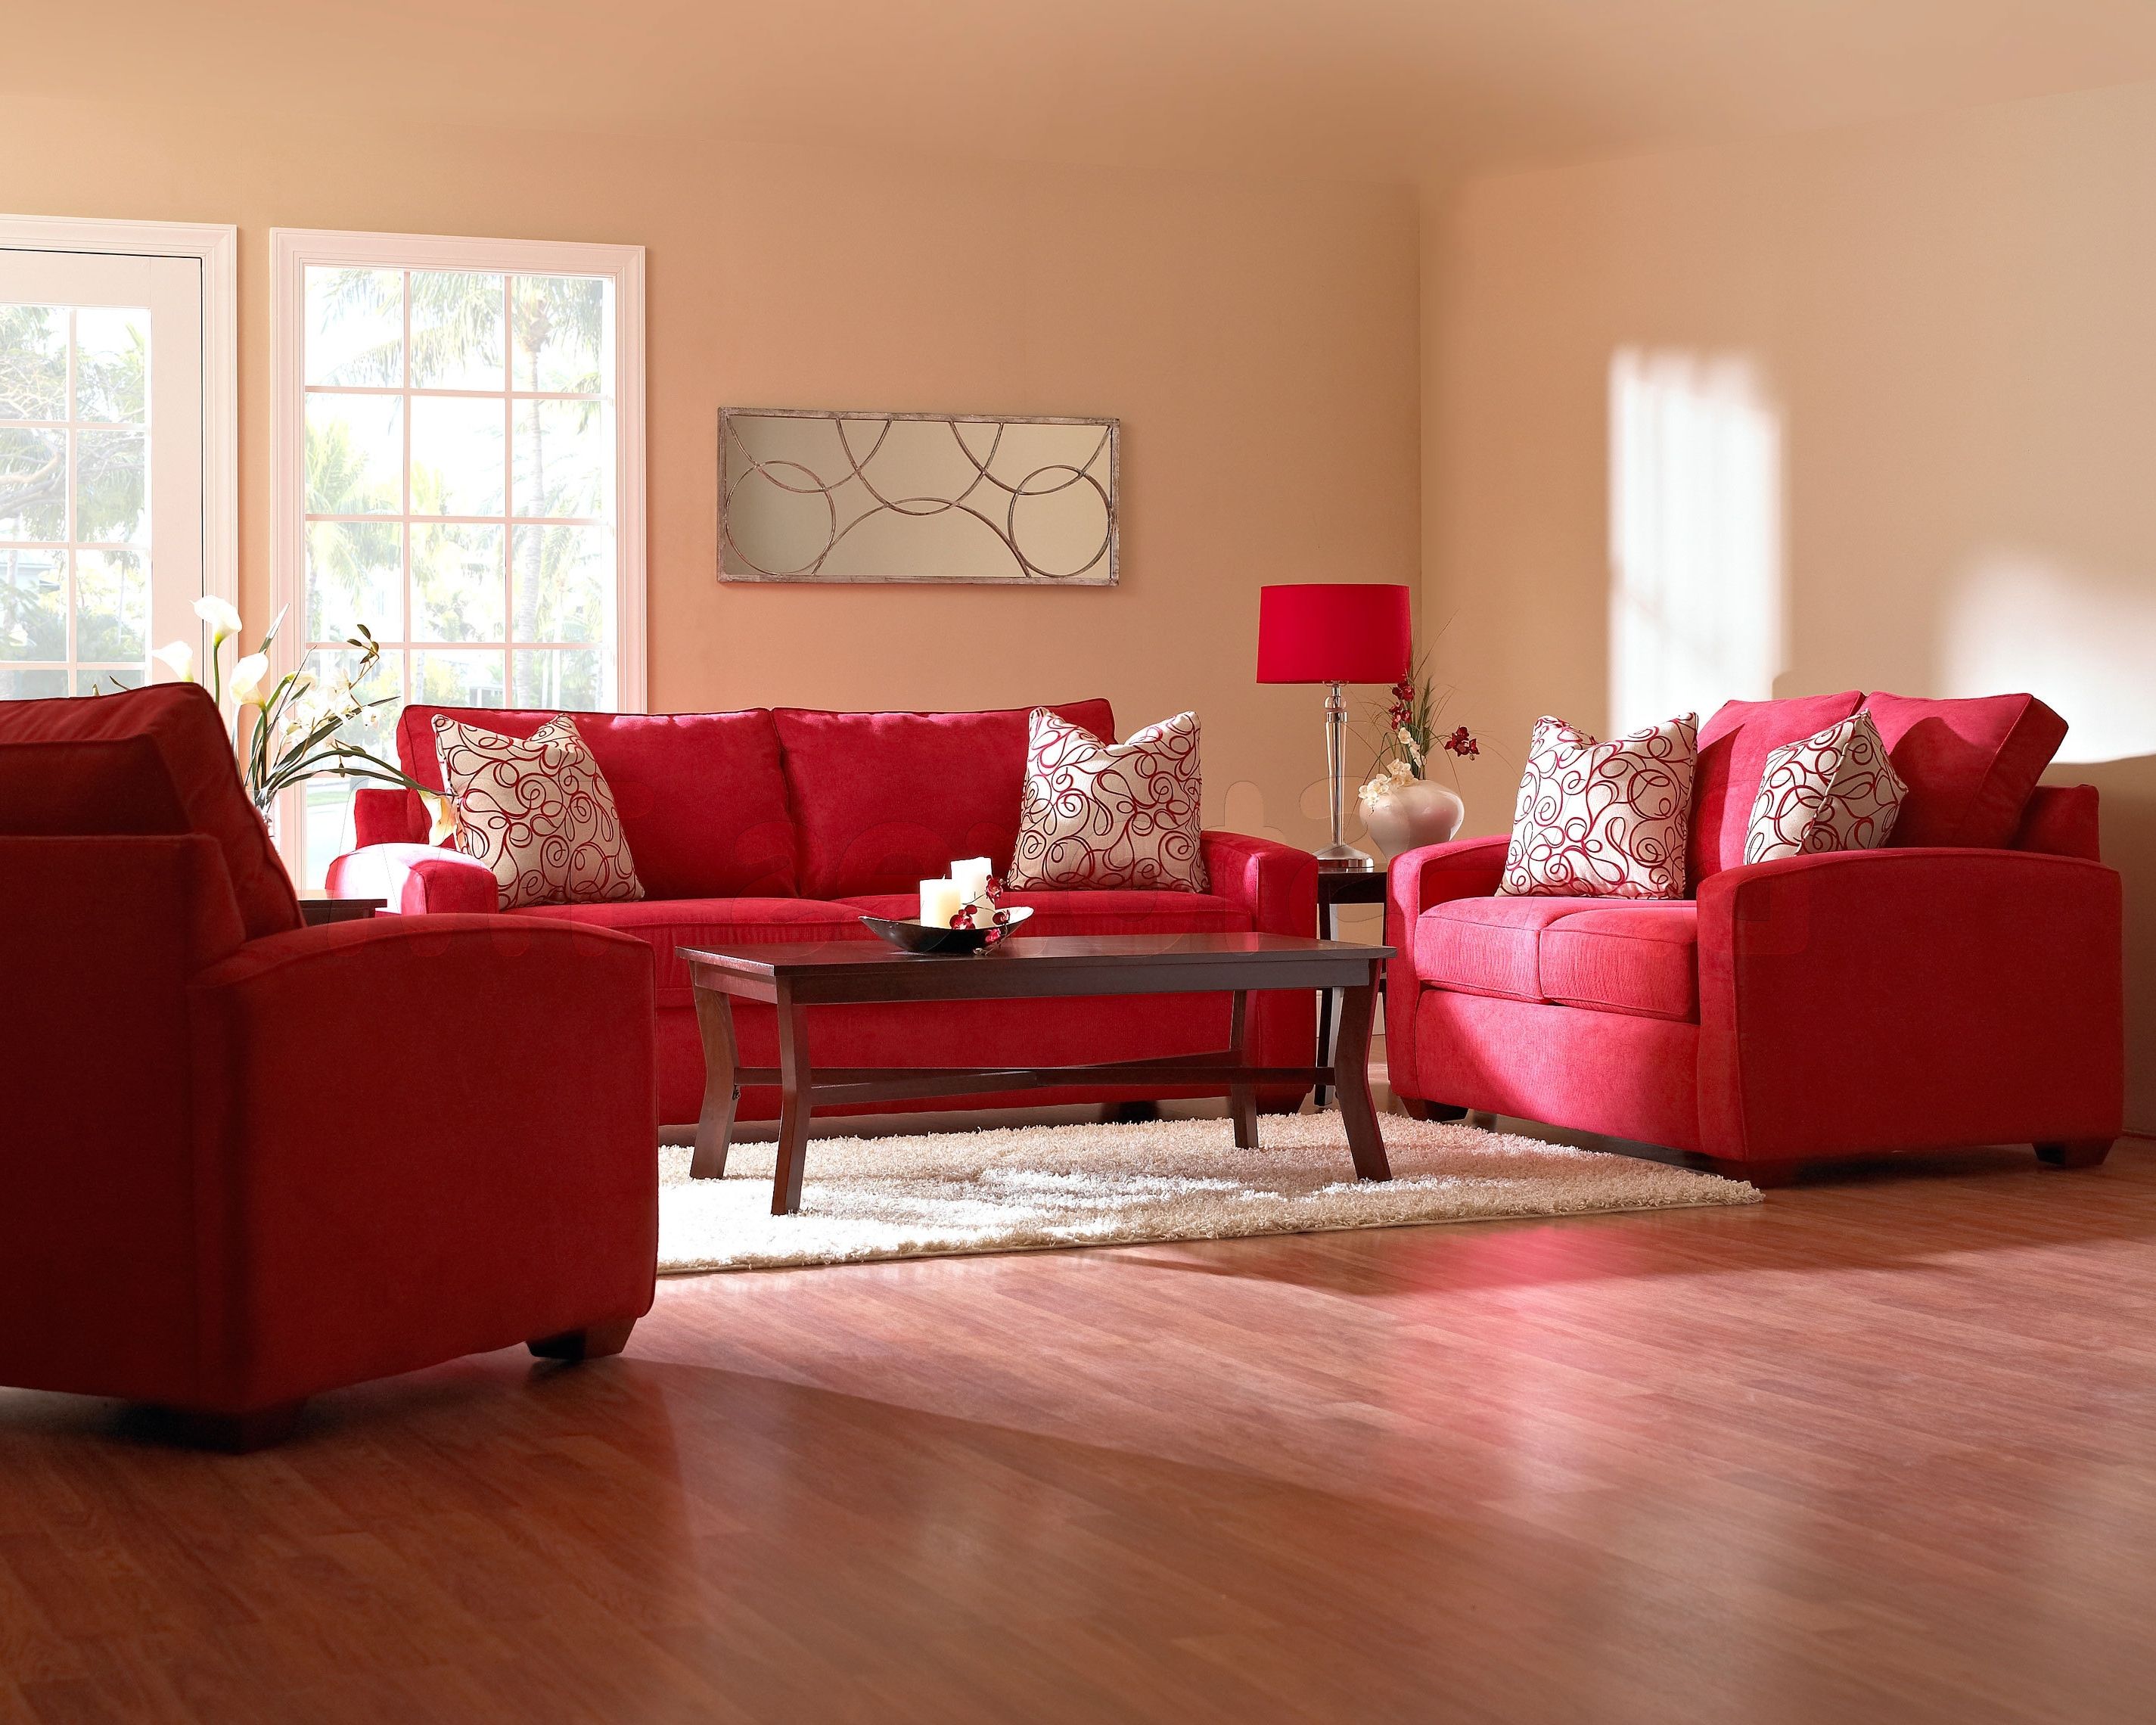 Red Sofa Chairs Inside Widely Used Red Sofa Living Room Ideas Model Modern – Dma Homes (View 12 of 20)